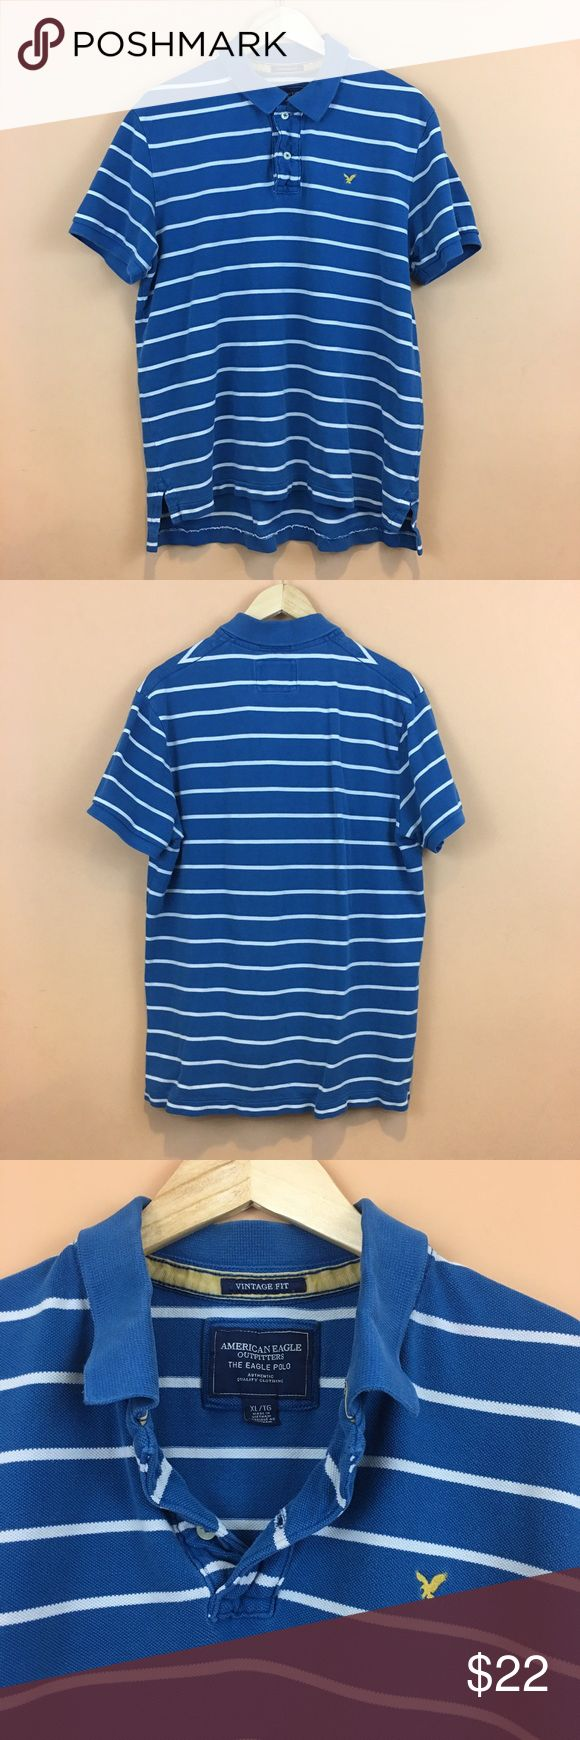 "Men's AEO Striped Polo Shirt Vintage Fit Men's American Eagle The Eagle Polo Striped Vintage Fit Polo Shirt Size XL 100% cotton  Pit to pit 23""  Length 28.5/ 31.5 American Eagle Outfitters Shirts Polos"